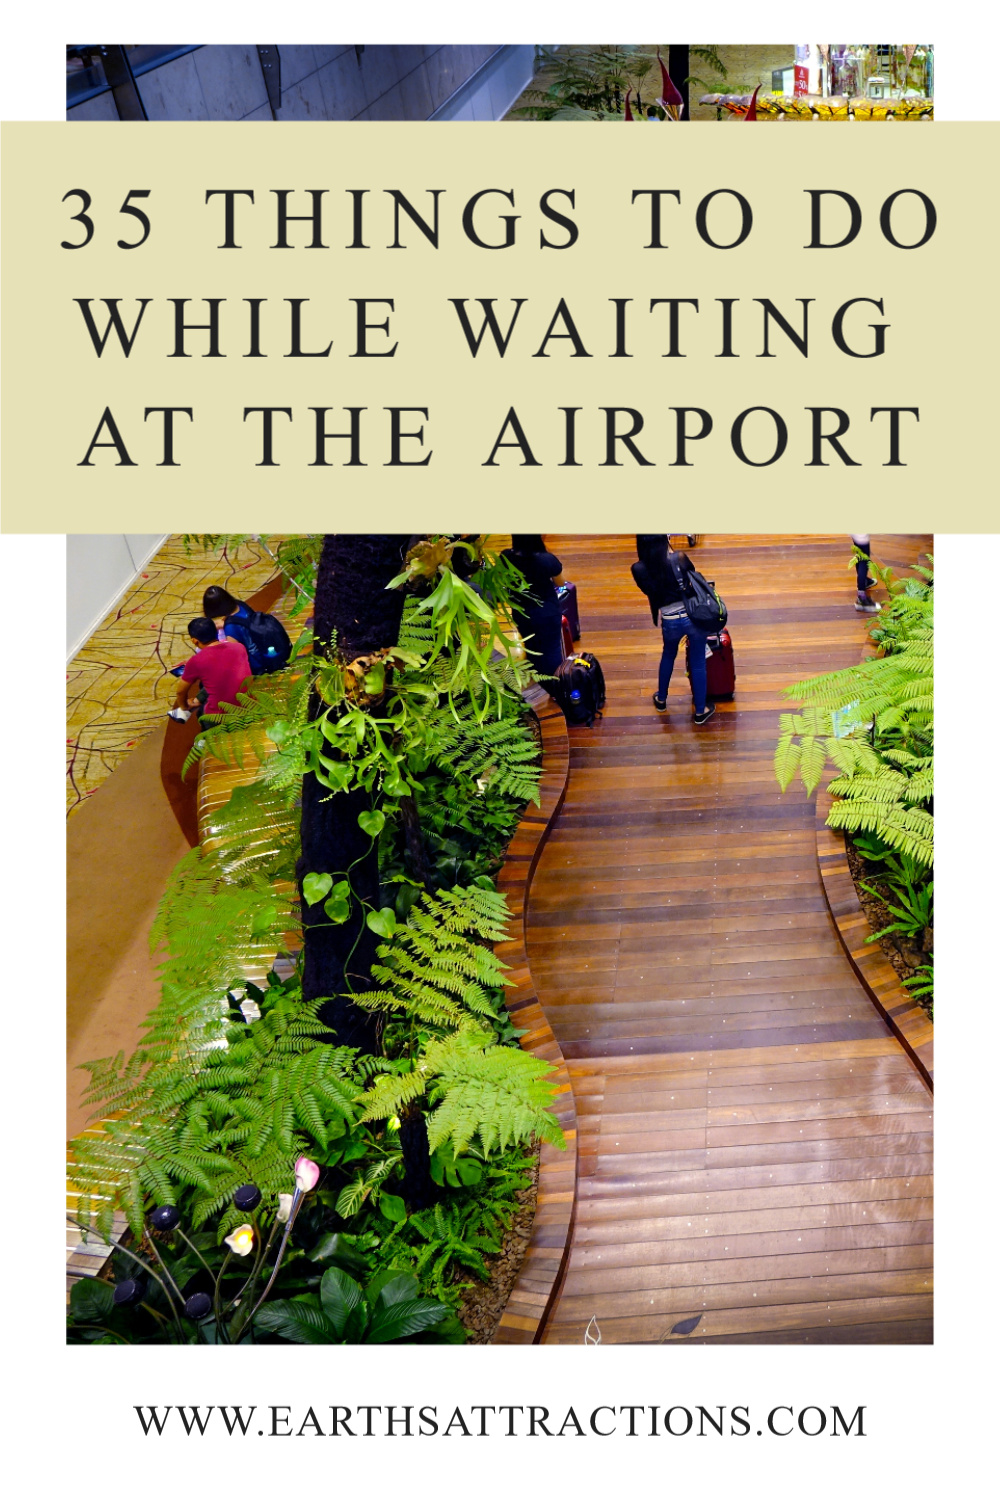 Waiting for a flight? Discover the best thigs to do at the airport. This is a selection of the best things to do before boarding. #travel #airport #airportactivities #airportthingstodo #traveltips #earthsattractions